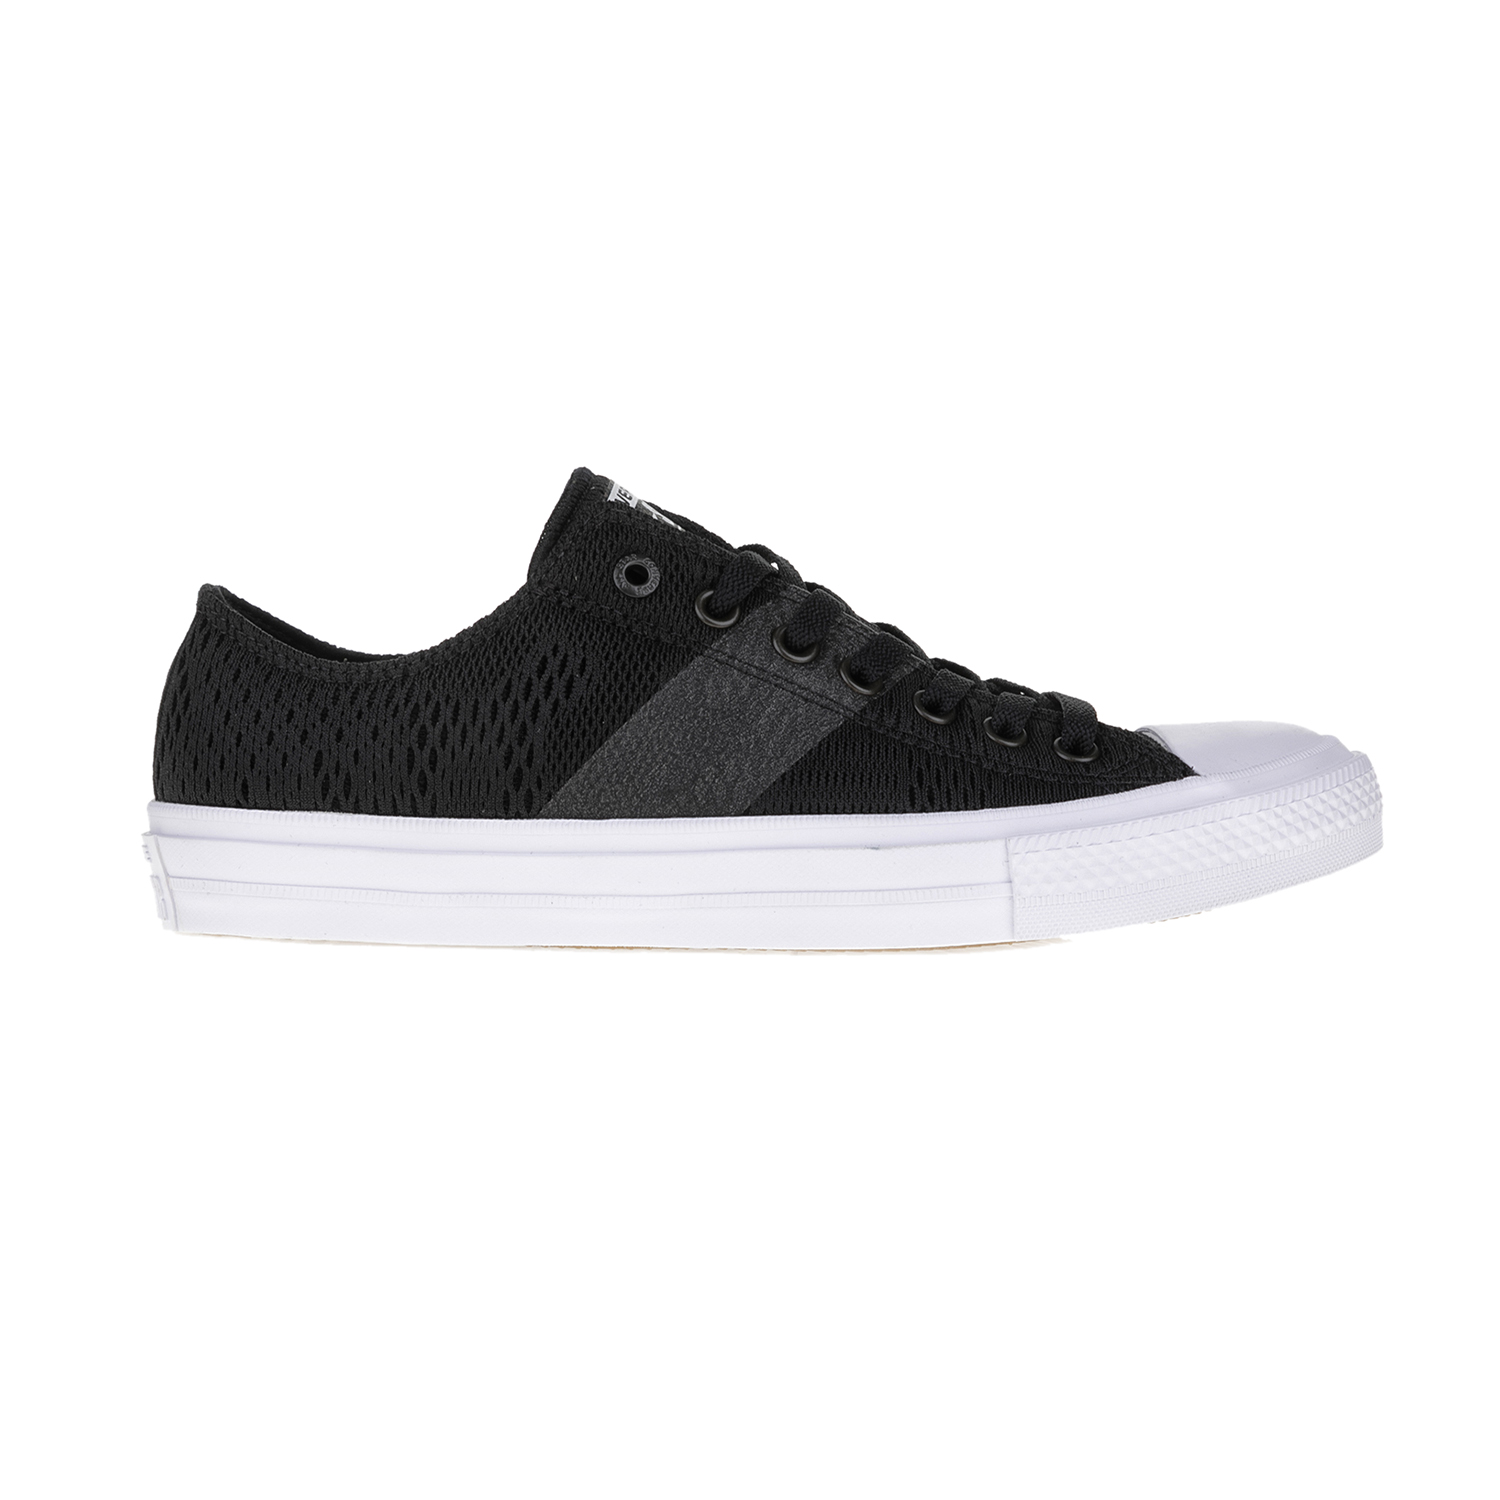 -30% Factory Outlet CONVERSE – Unisex παπούτσια Chuck Taylor All Star II Ox  μαύρα 29bd34bde25